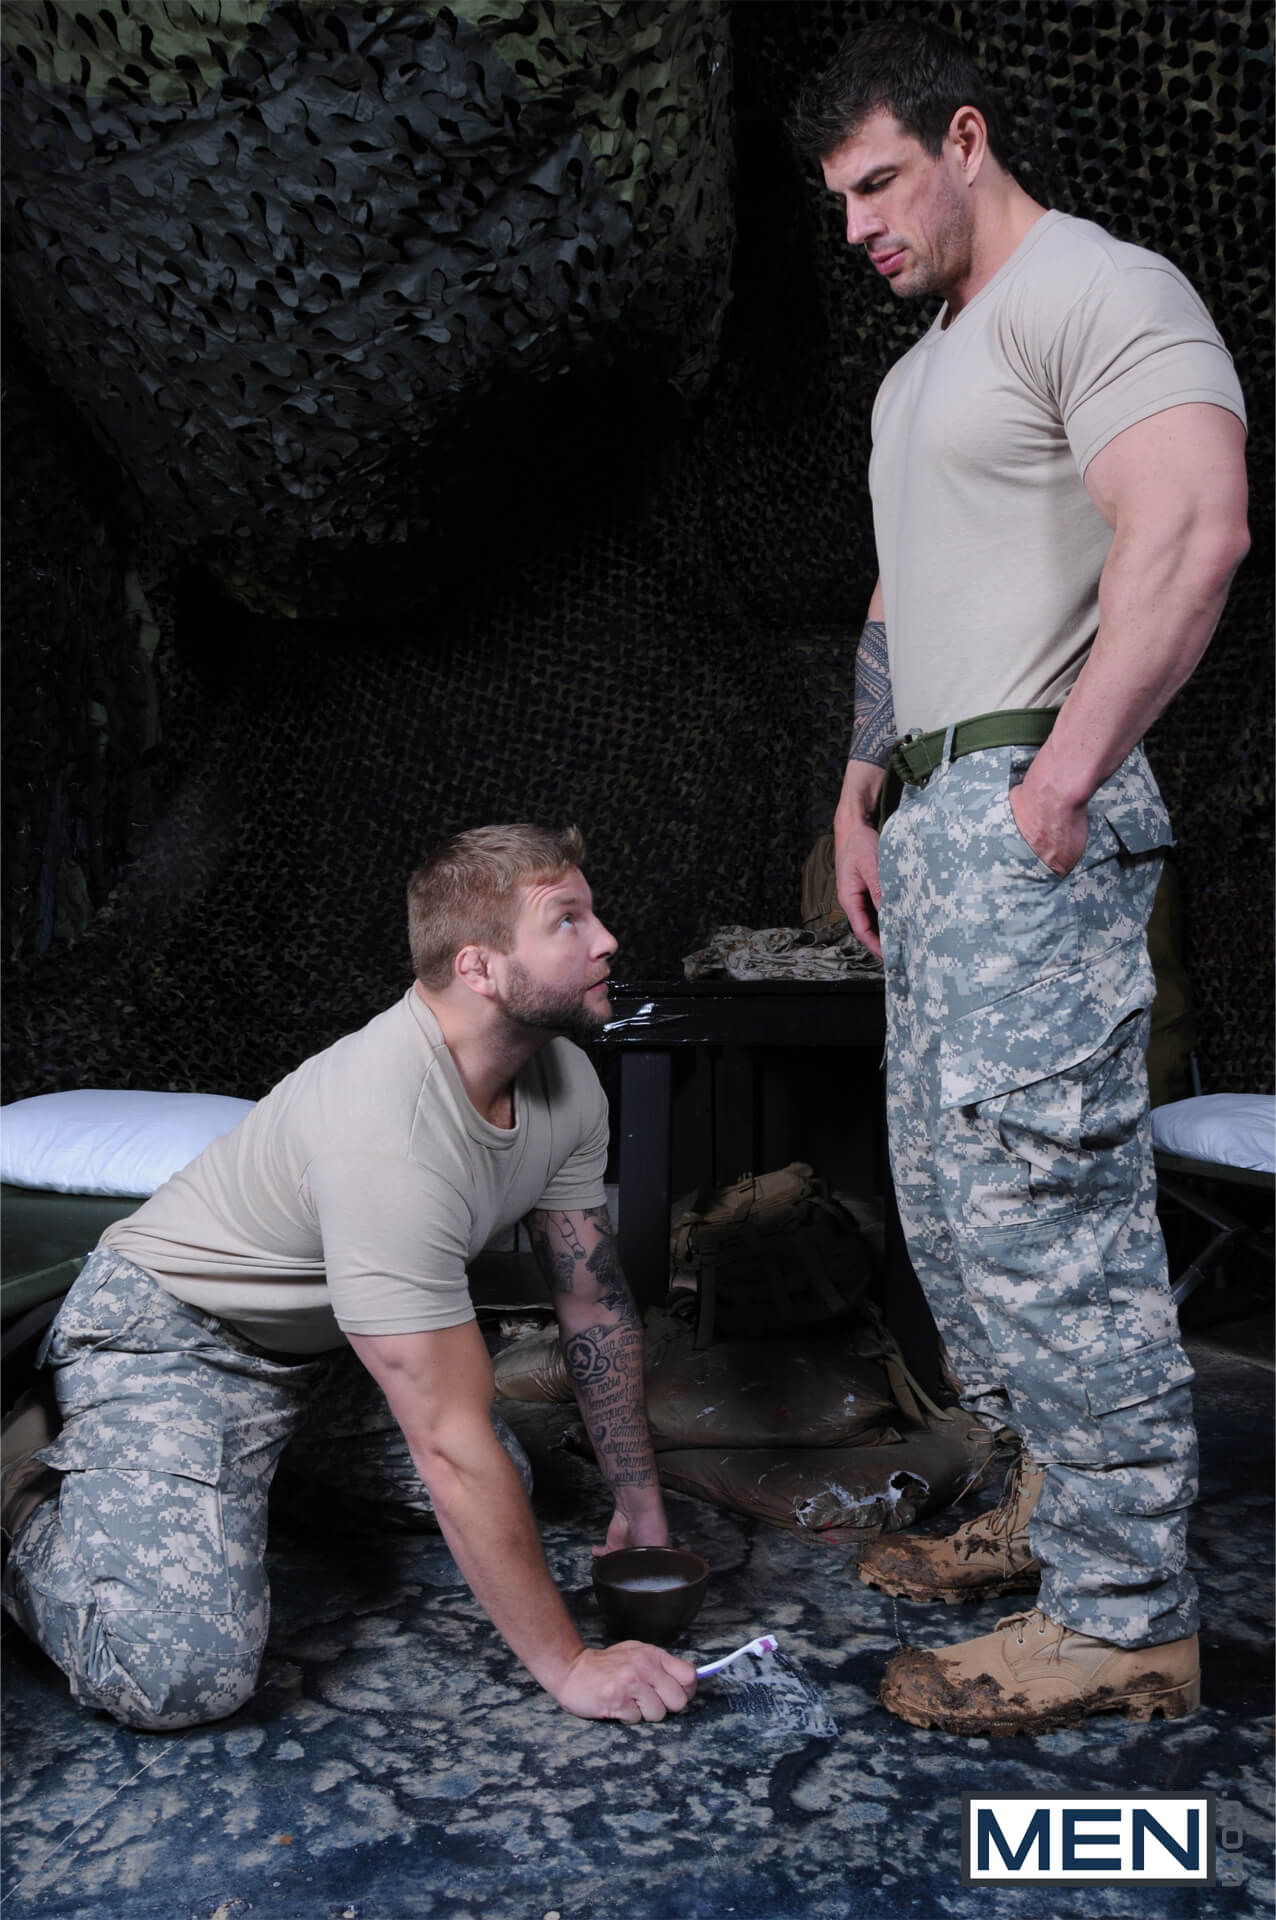 men drill my hole tour of duty part 1 colby jansen zeb atlas gay porn blog image 3